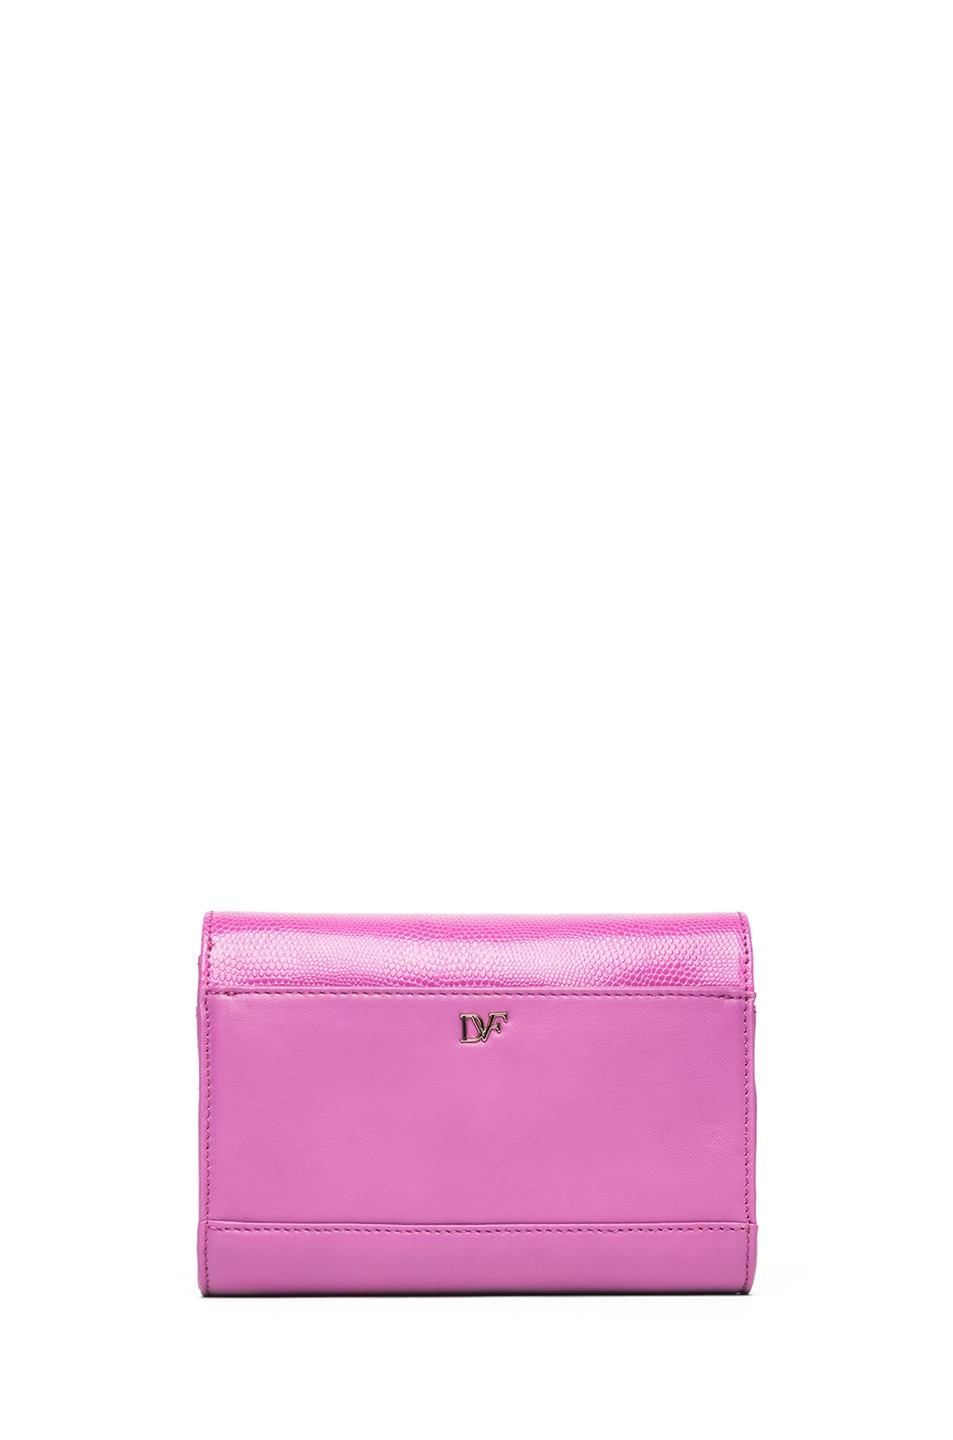 Image 2 of Diane von Furstenberg Mini Lips Embossed Lizard Leather Bag in Pink Fuchsia